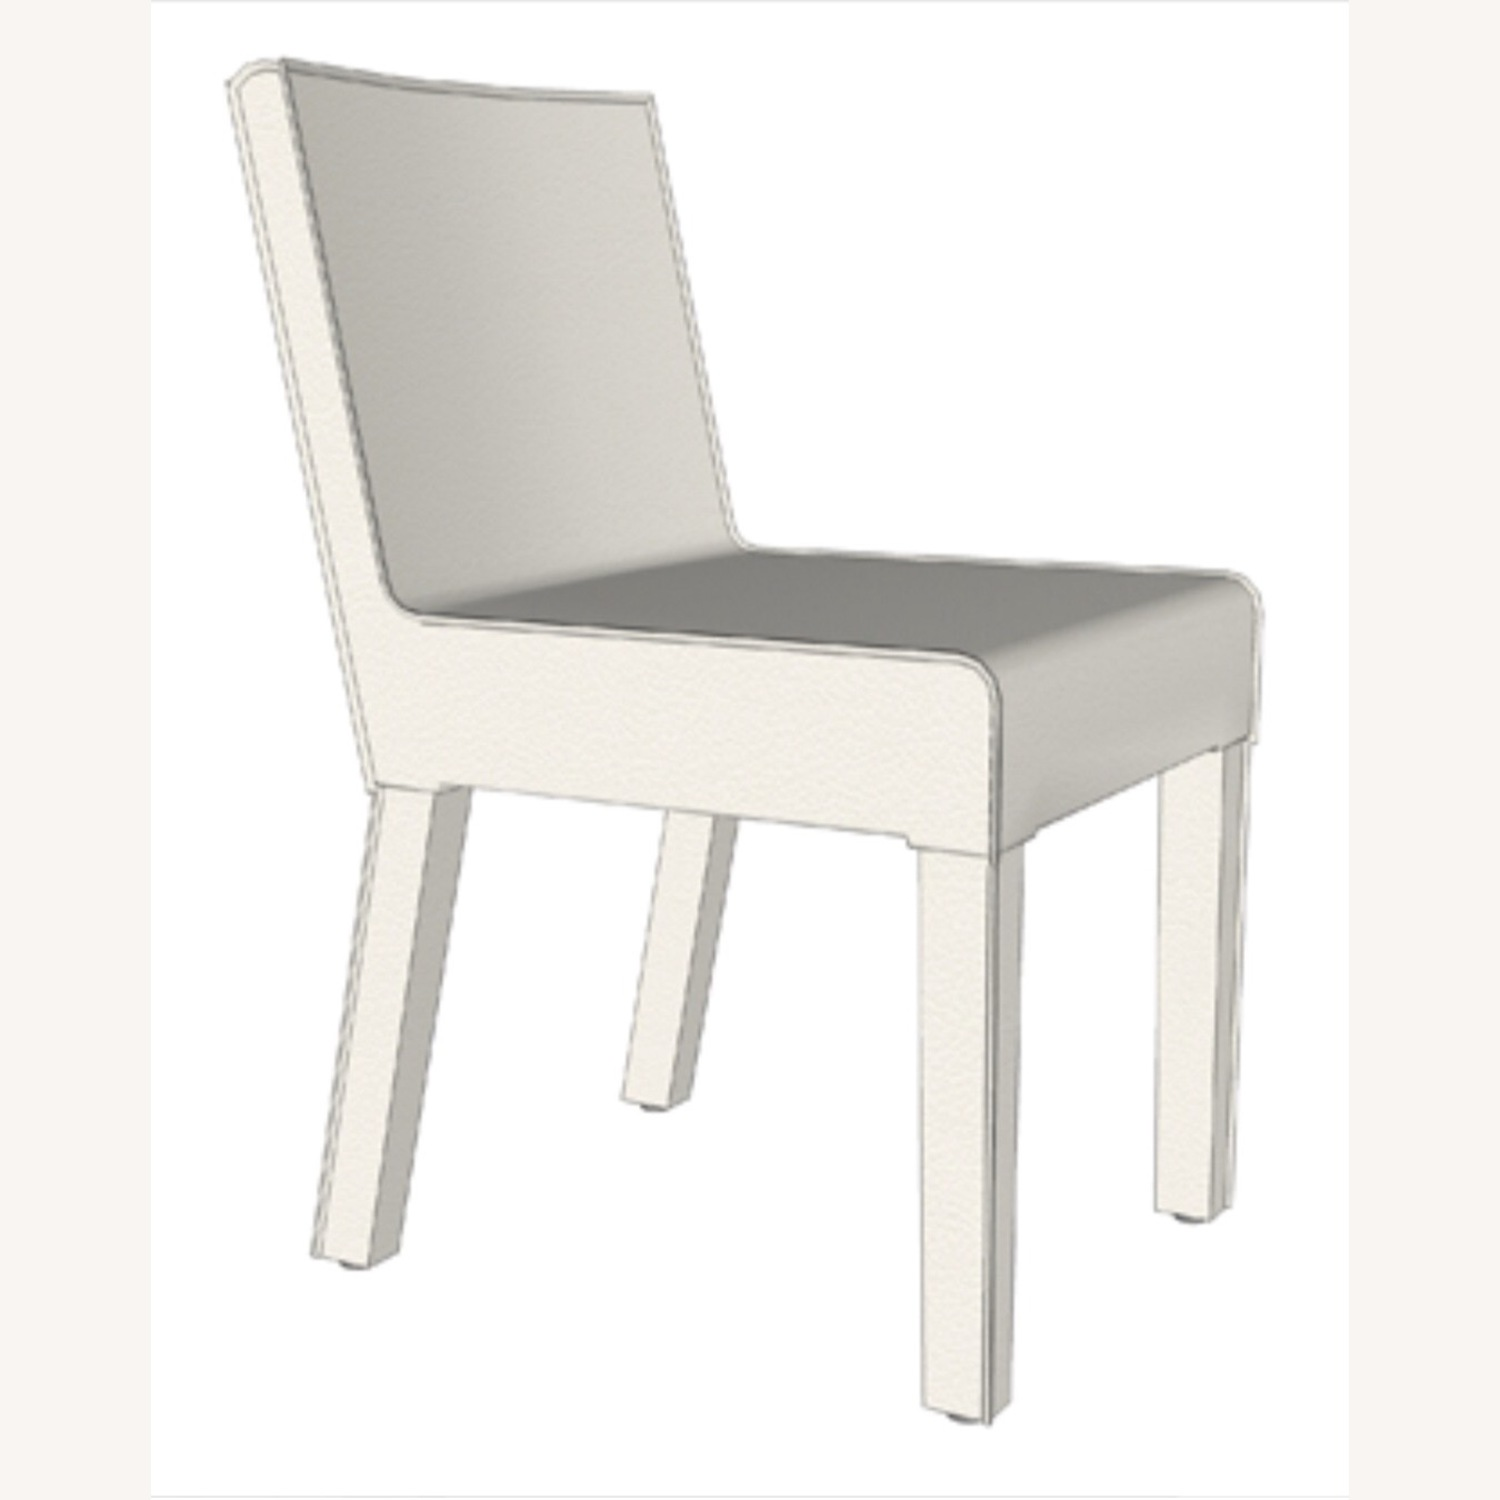 4 Chalk Leather Dining Chairs - image-2